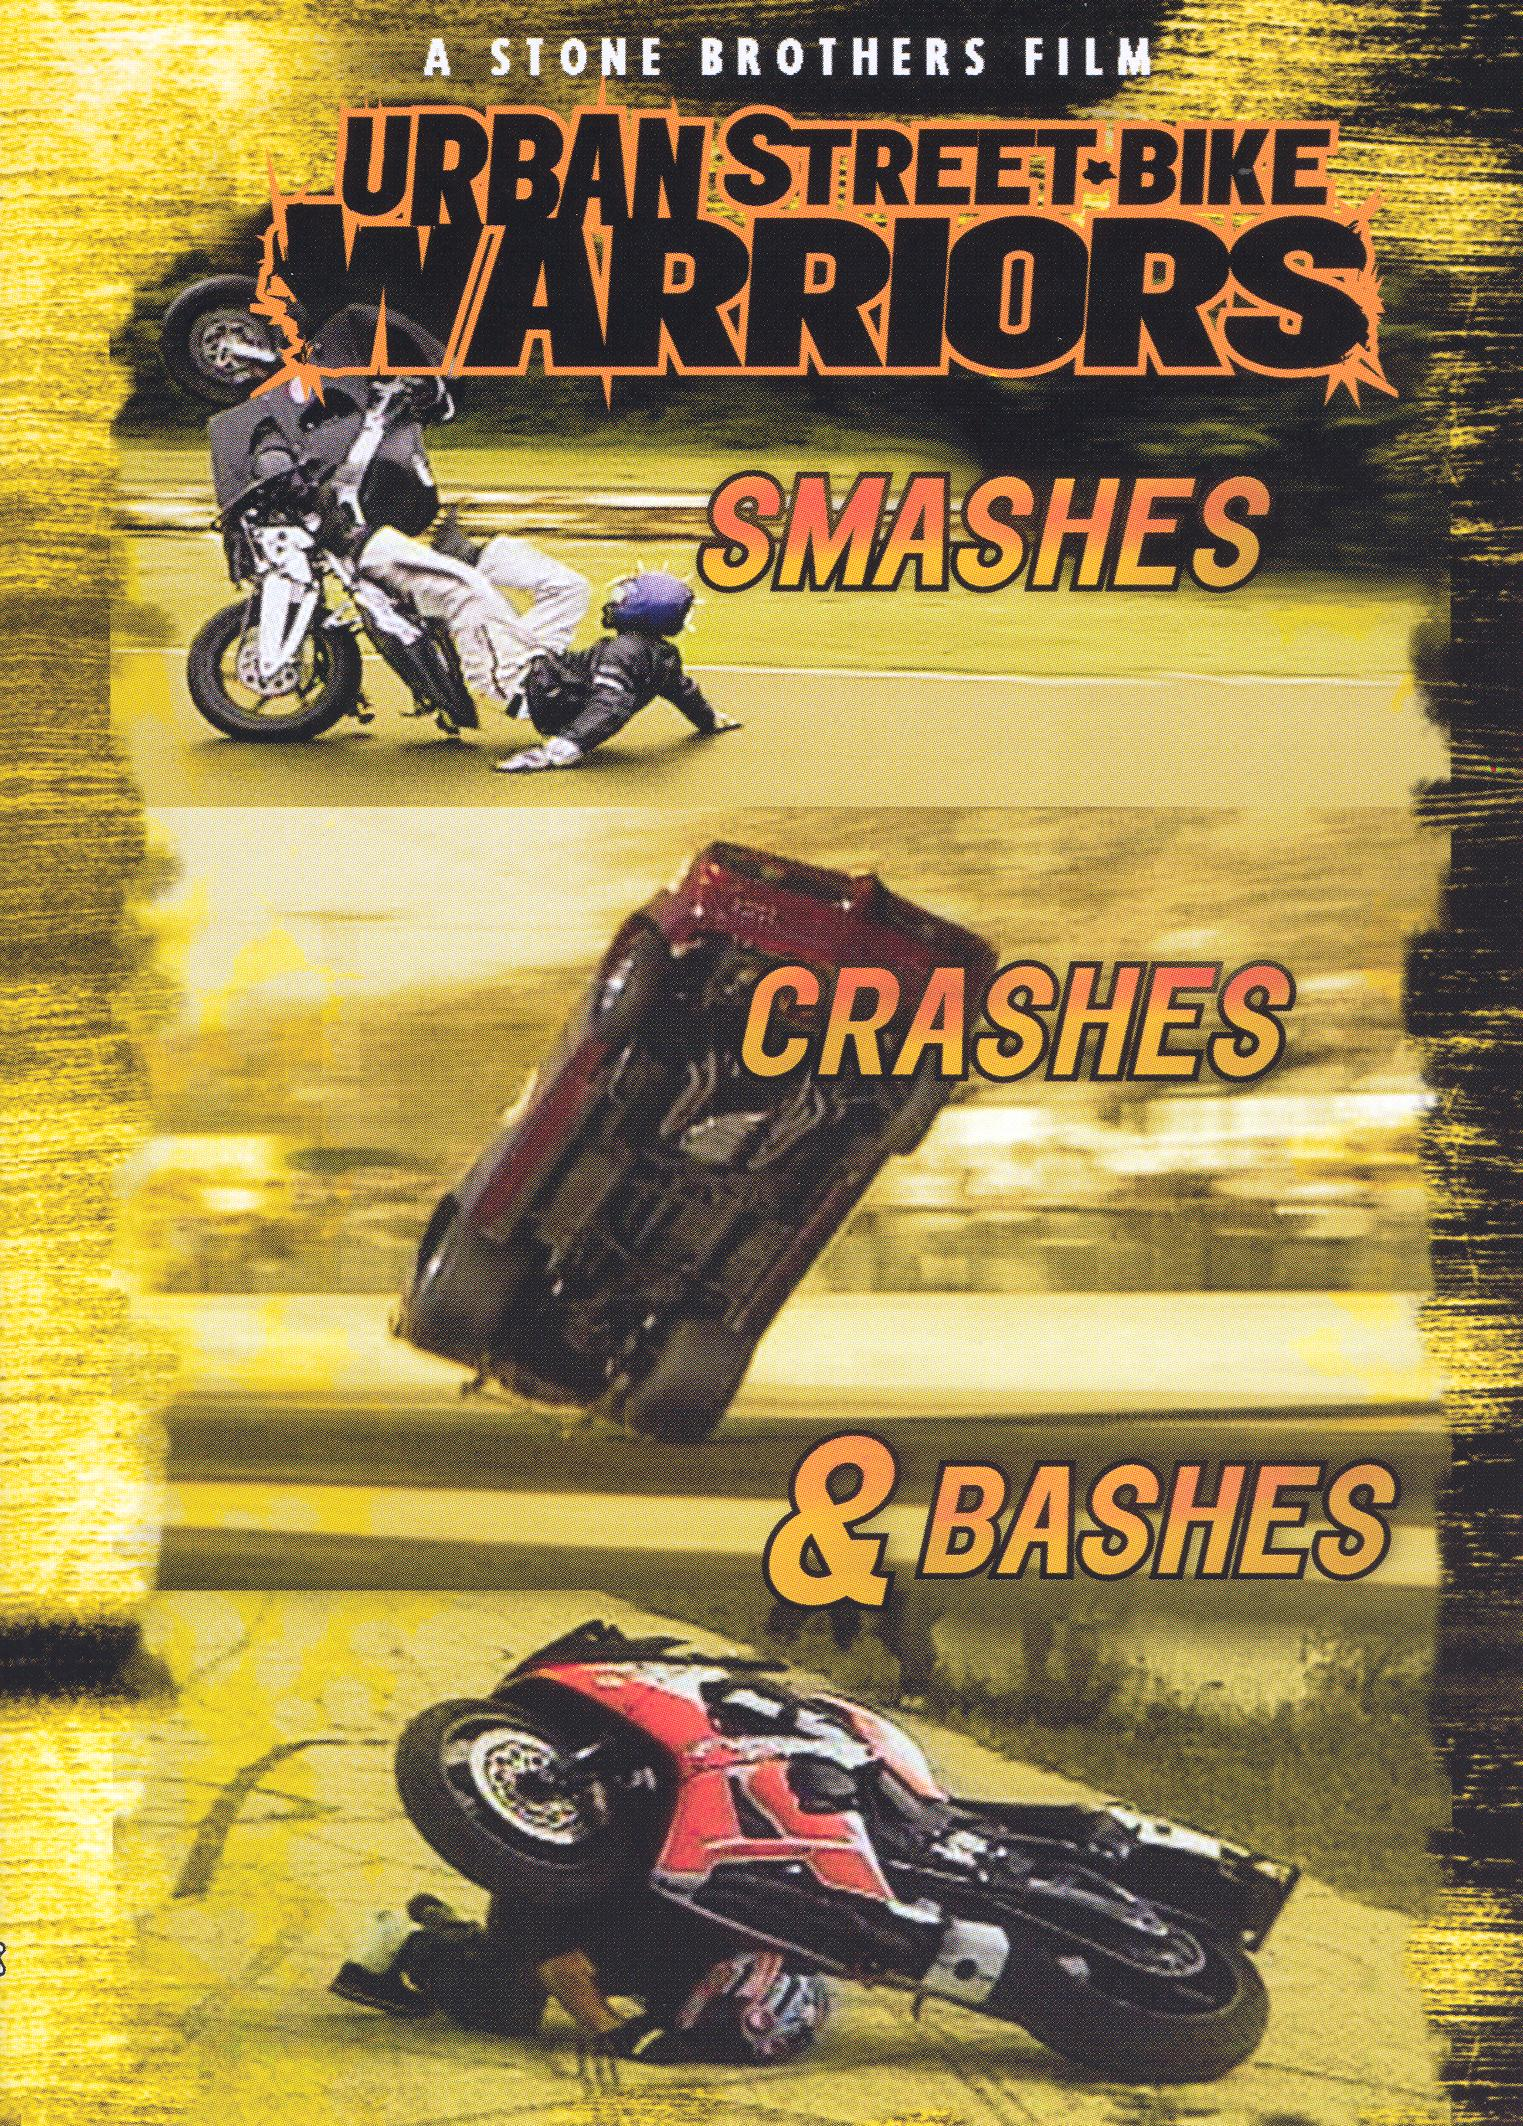 Urban Street-Bike Warriors: Smashes, Bashes, Crashes